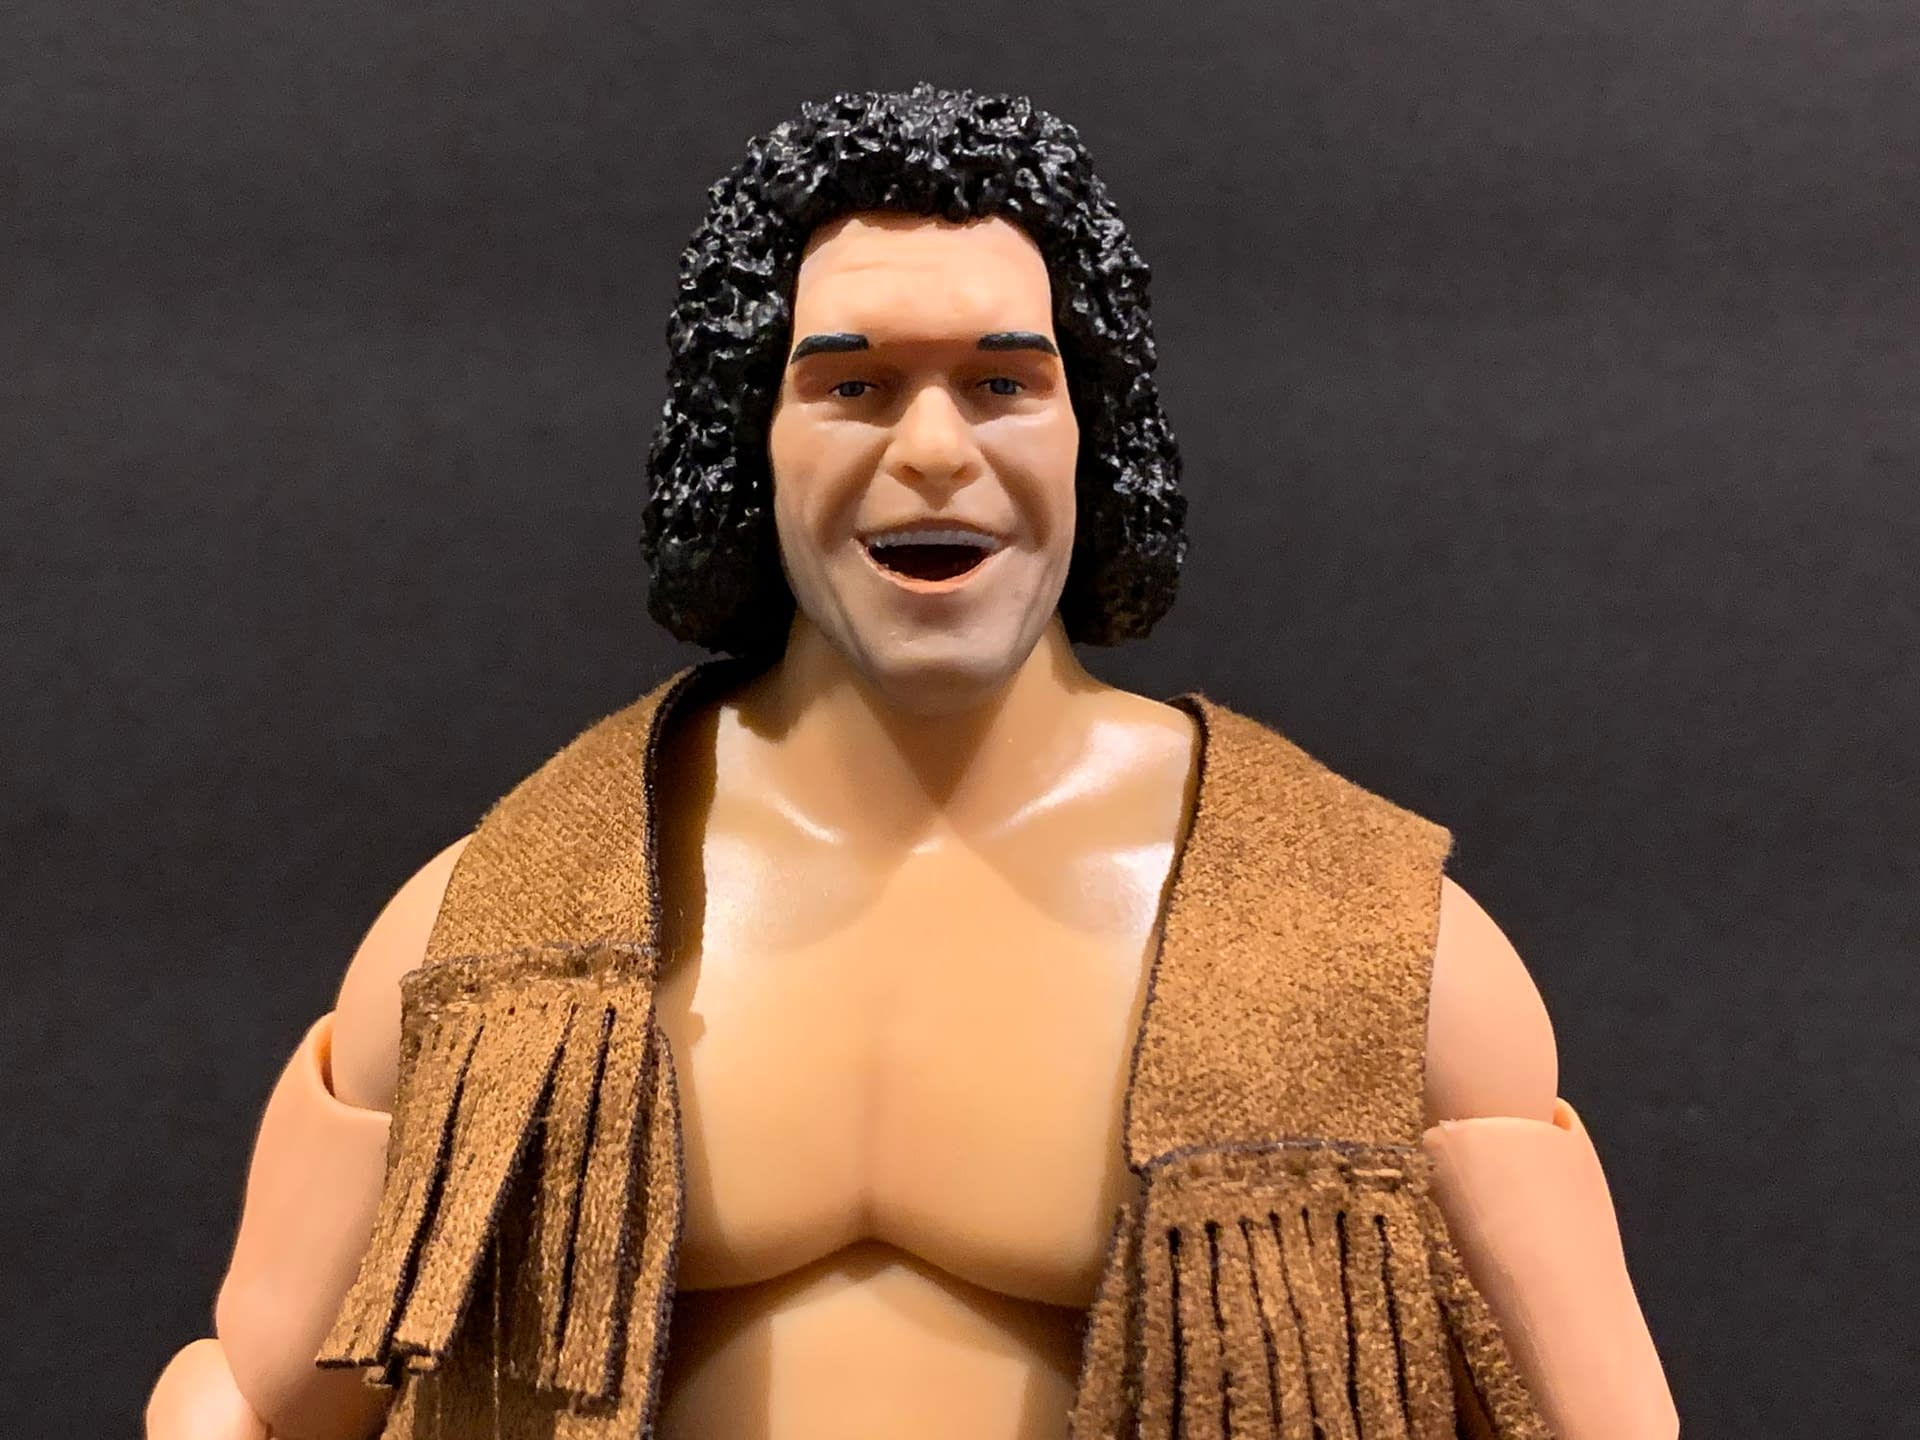 Let's Take A Look At Super7's New Ultimate Andre The Giant Figure